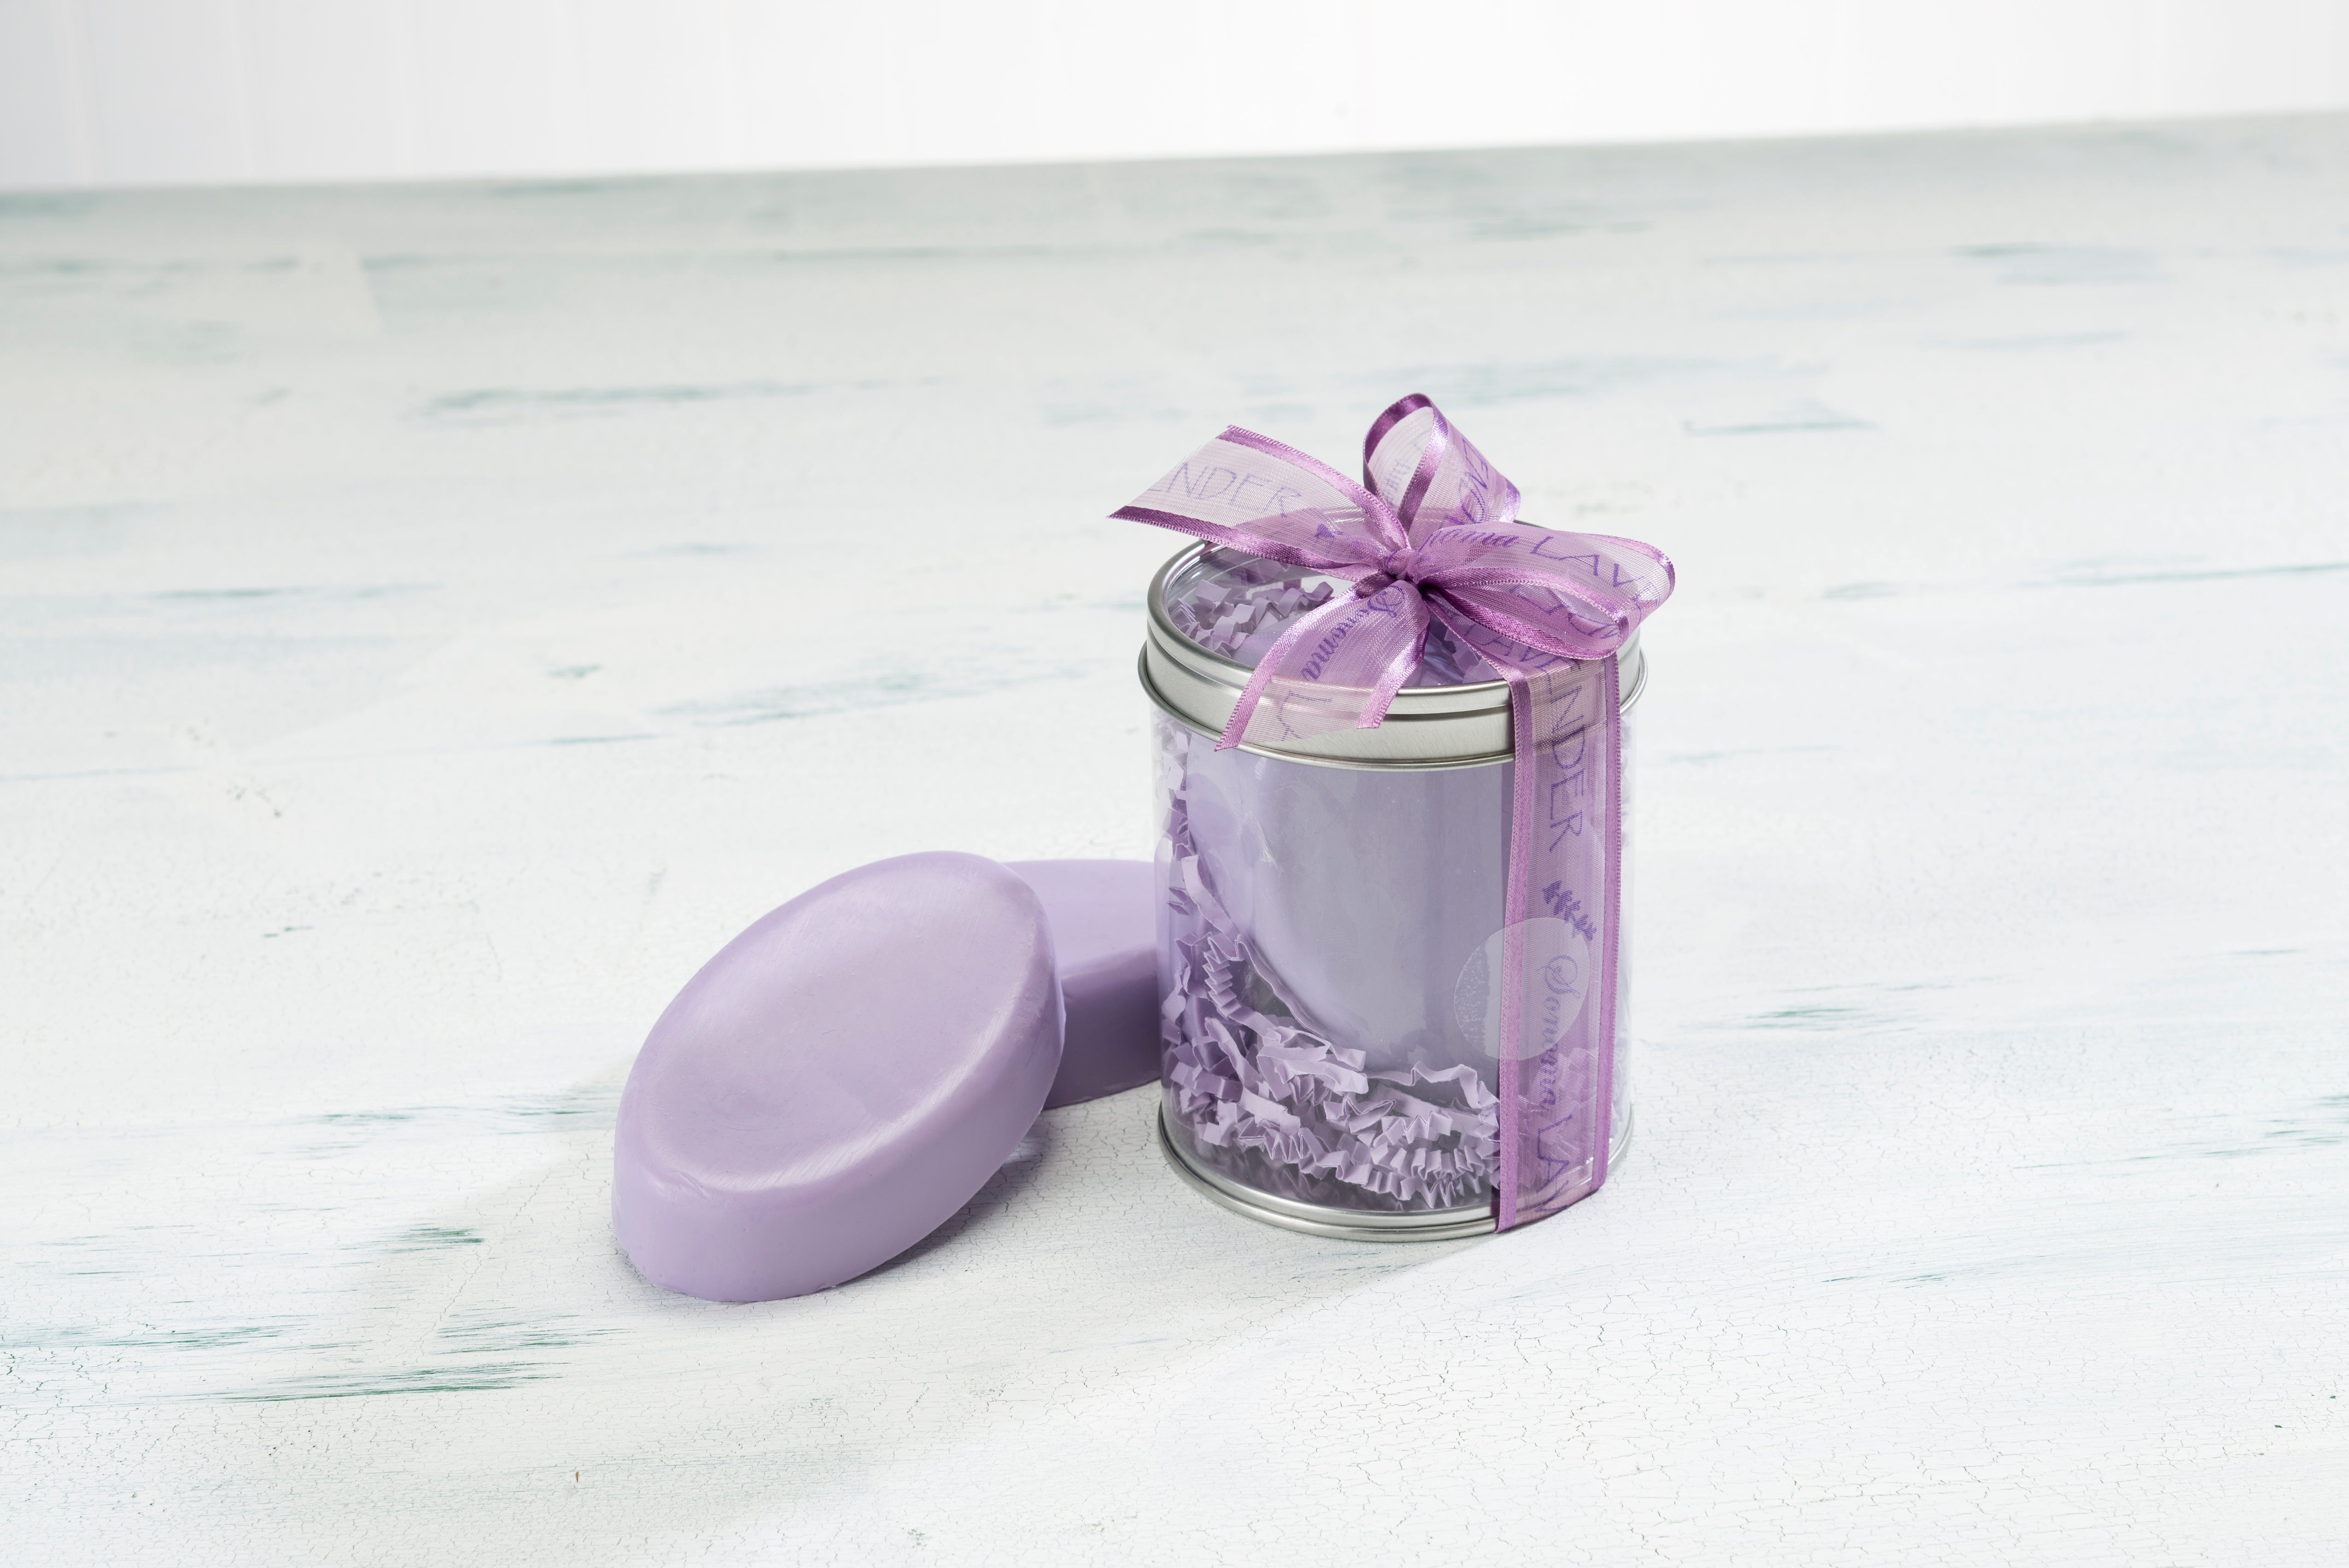 Duo of Lavender Soap Bars in Clear Canister